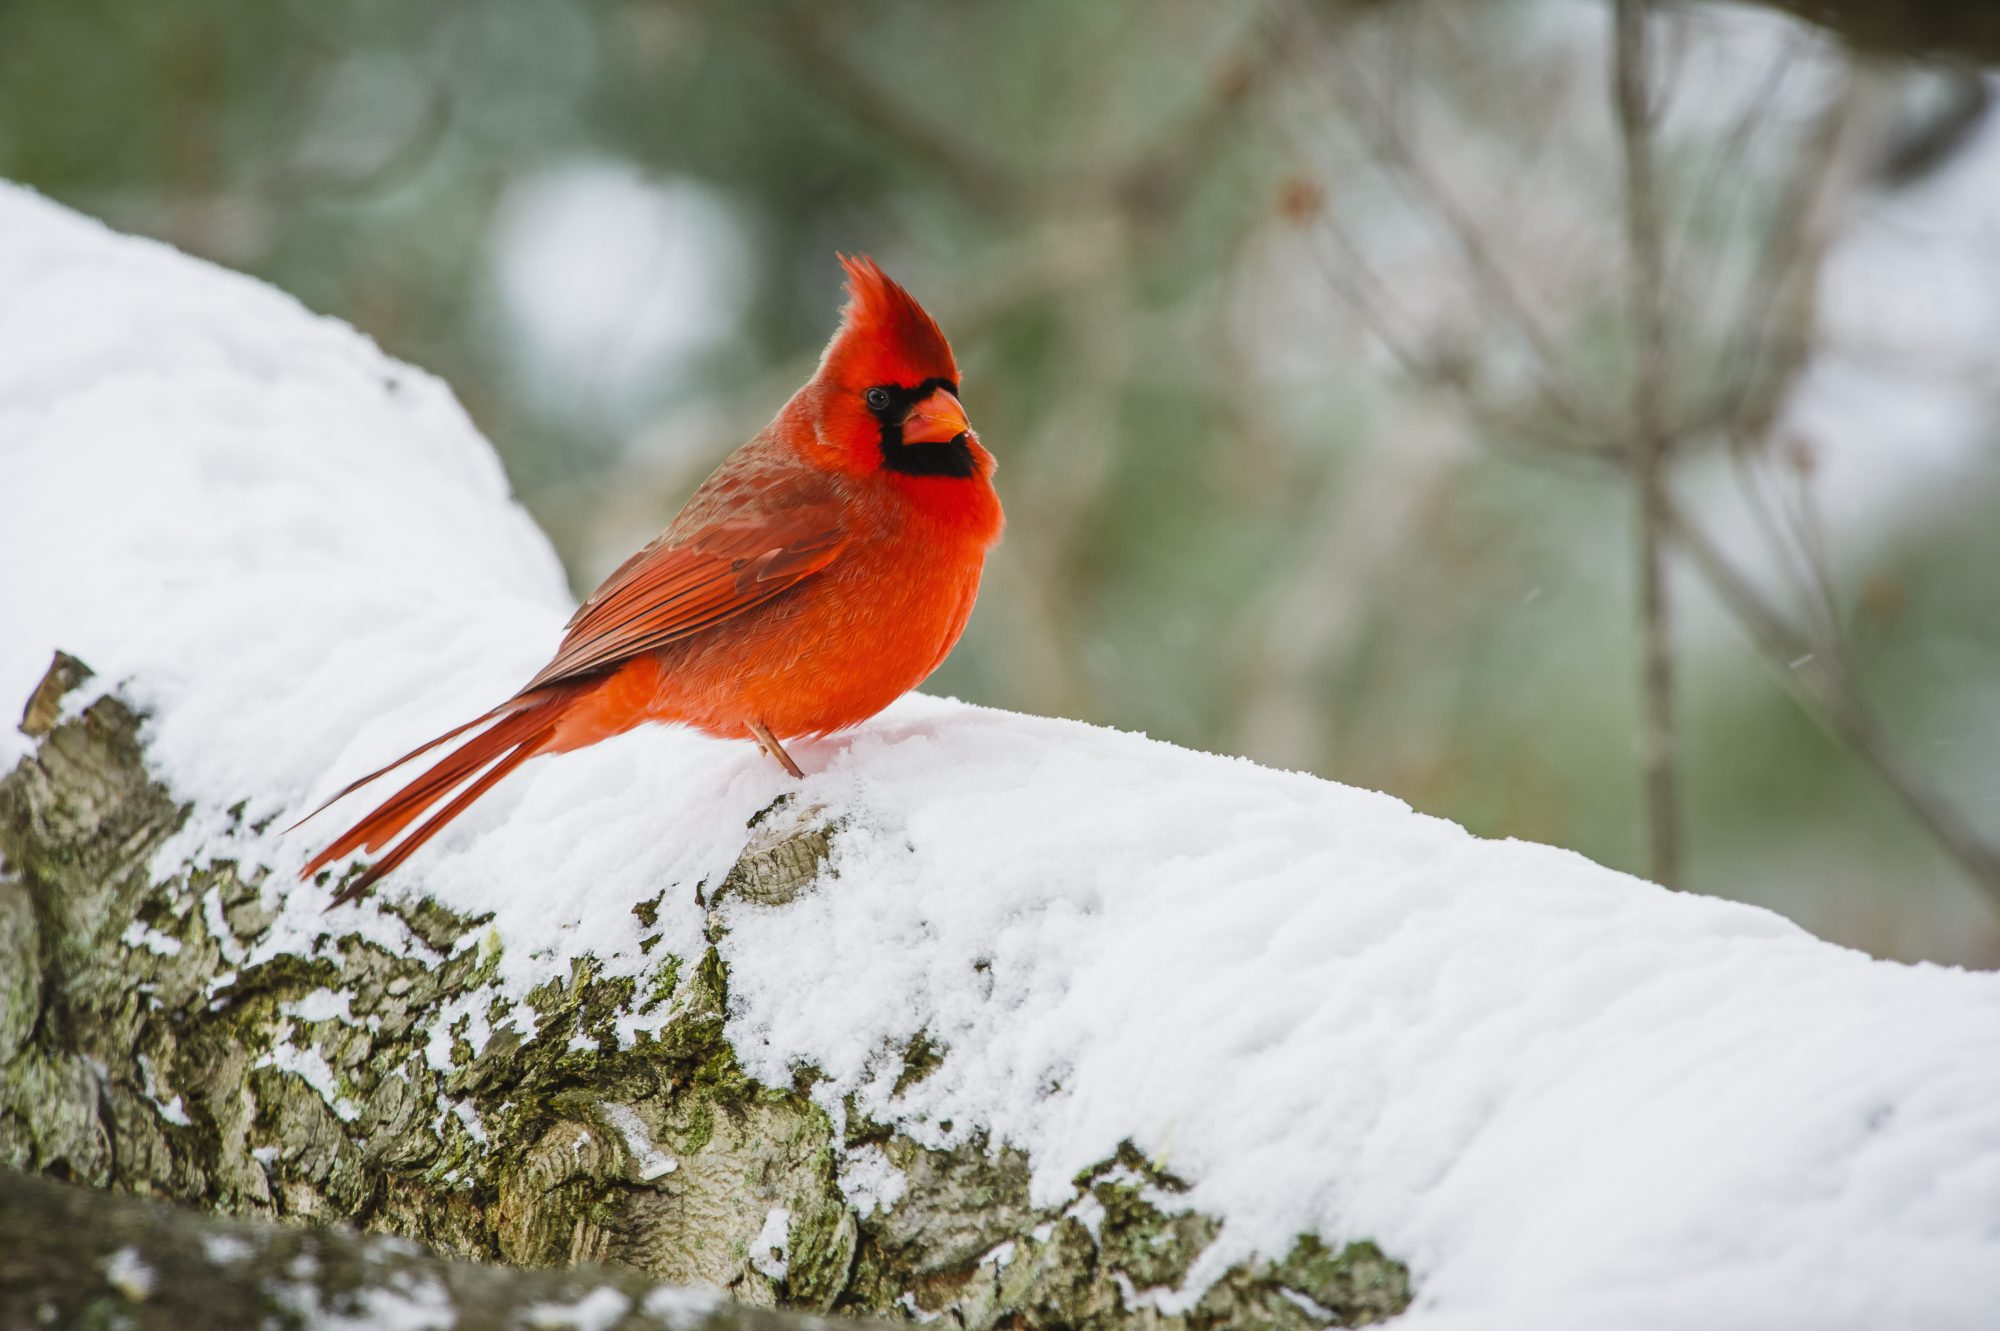 North Carolina- Northern Cardinal